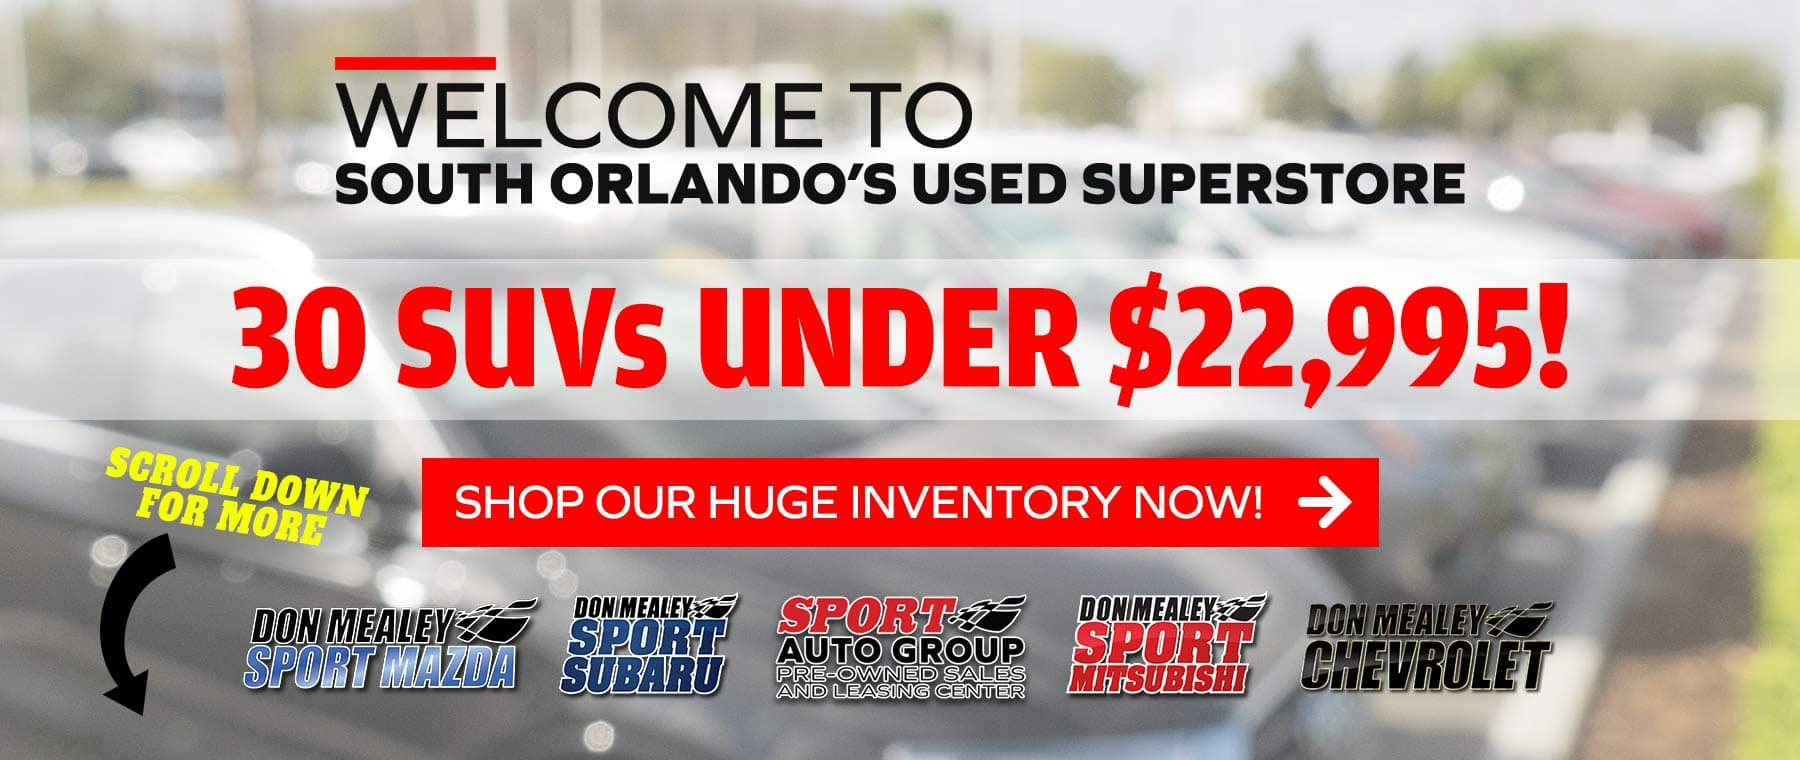 Sport Auto Group Pre Owned Sales U0026 Leasing Center In Orlando, FL